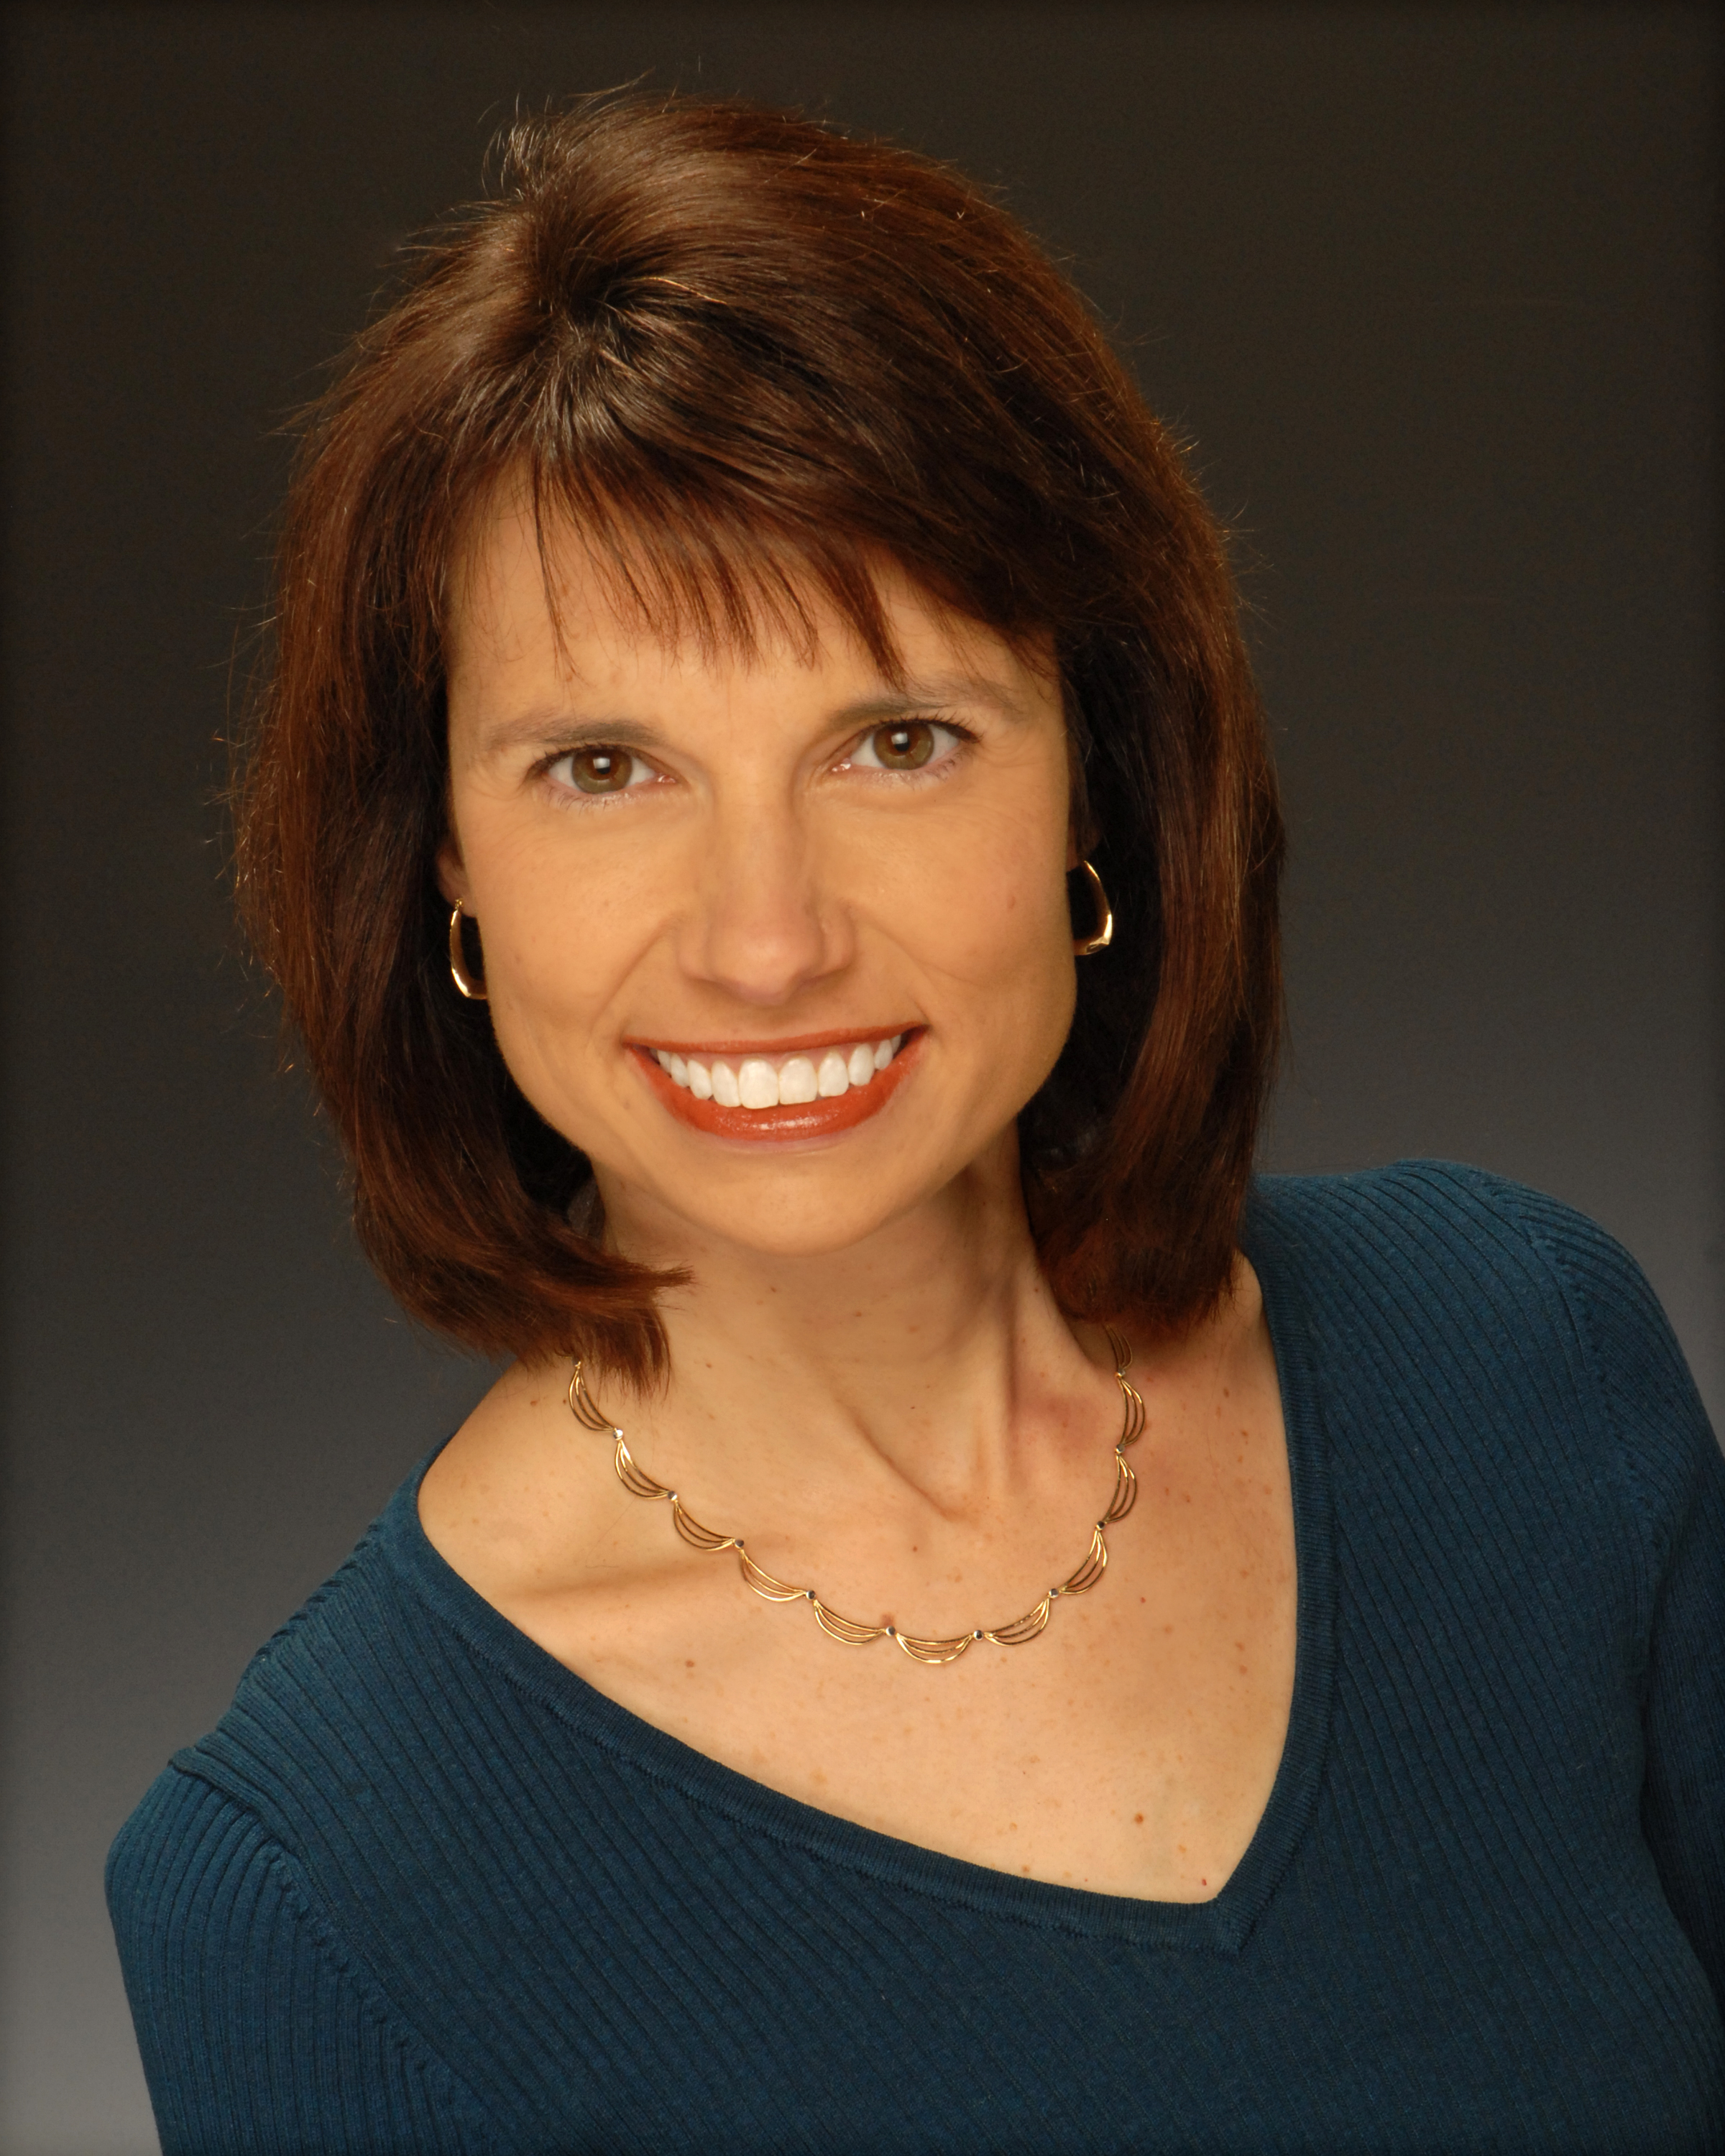 Author: The Missing Books By Margaret Peterson Haddix From Simon